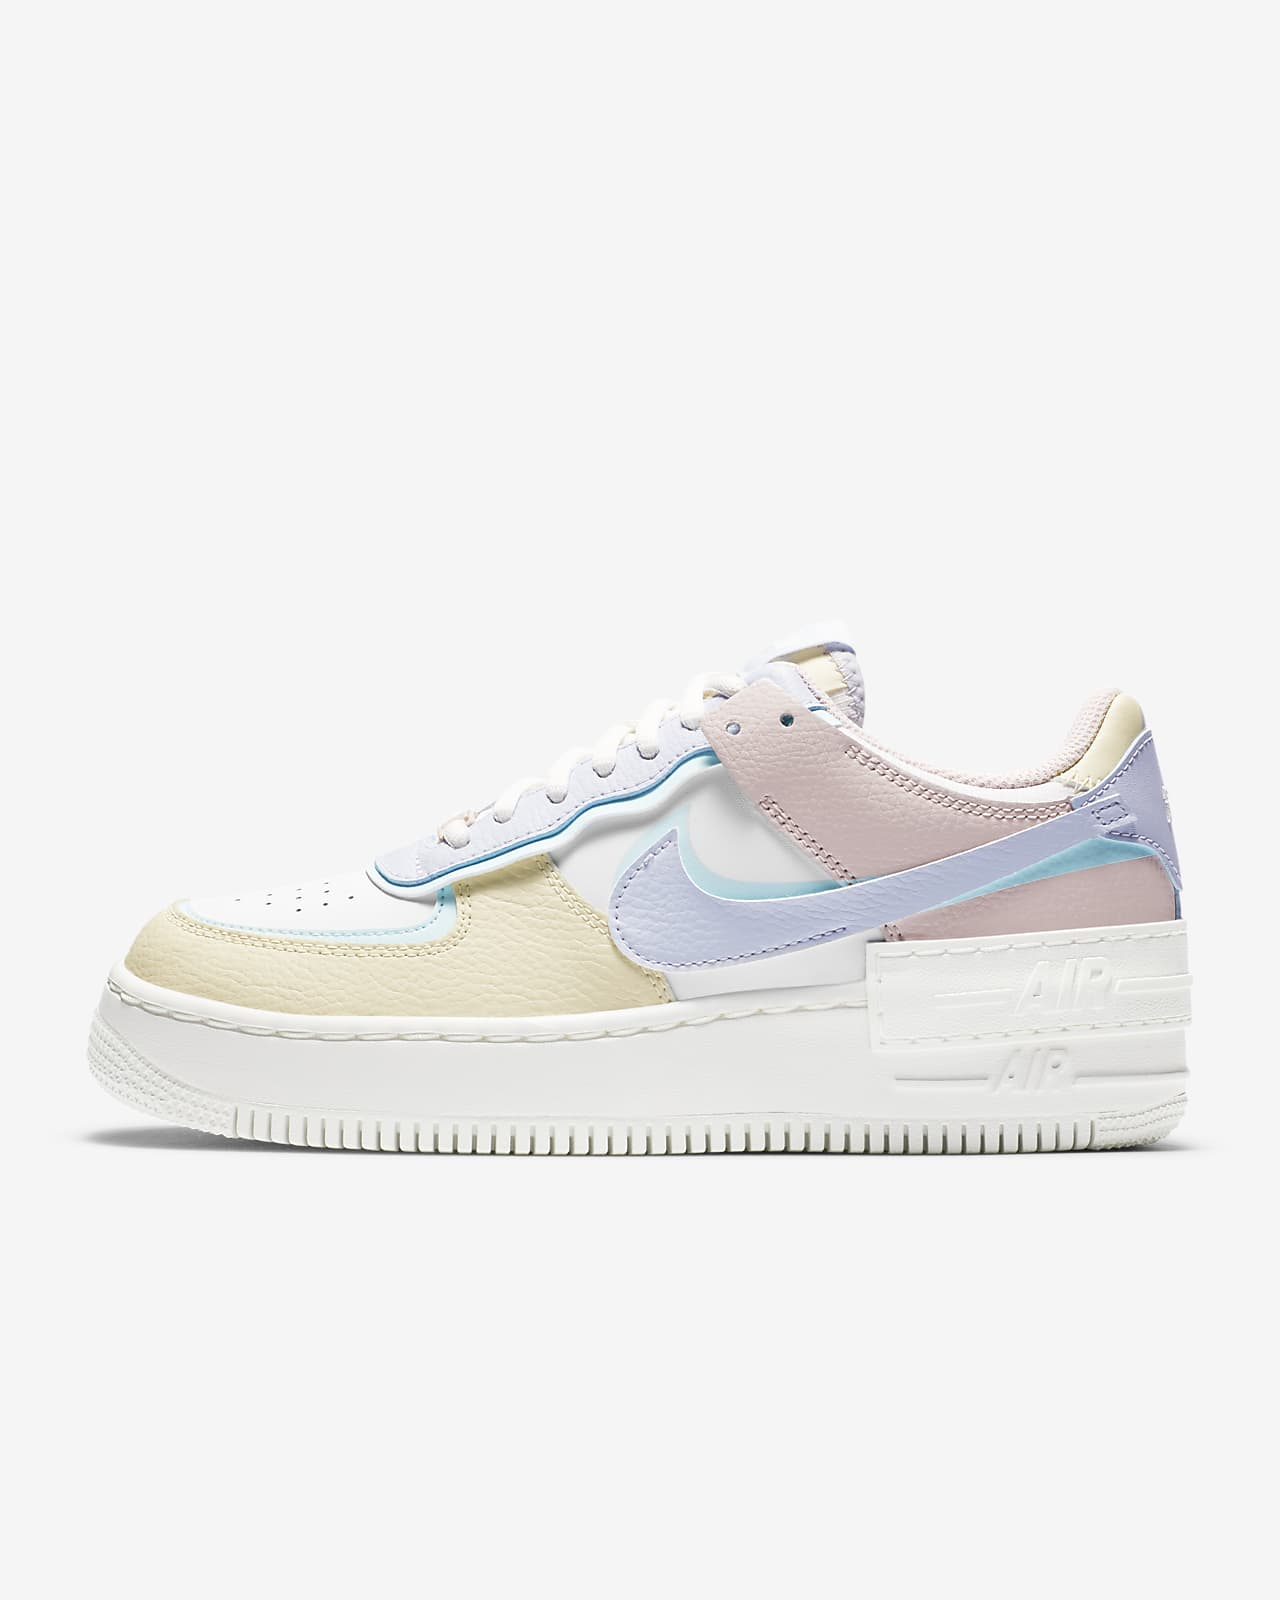 Nike Air Force 1 Shadow Women S Shoe Nike Com Iconic air force 1 design details. nike air force 1 shadow women s shoe